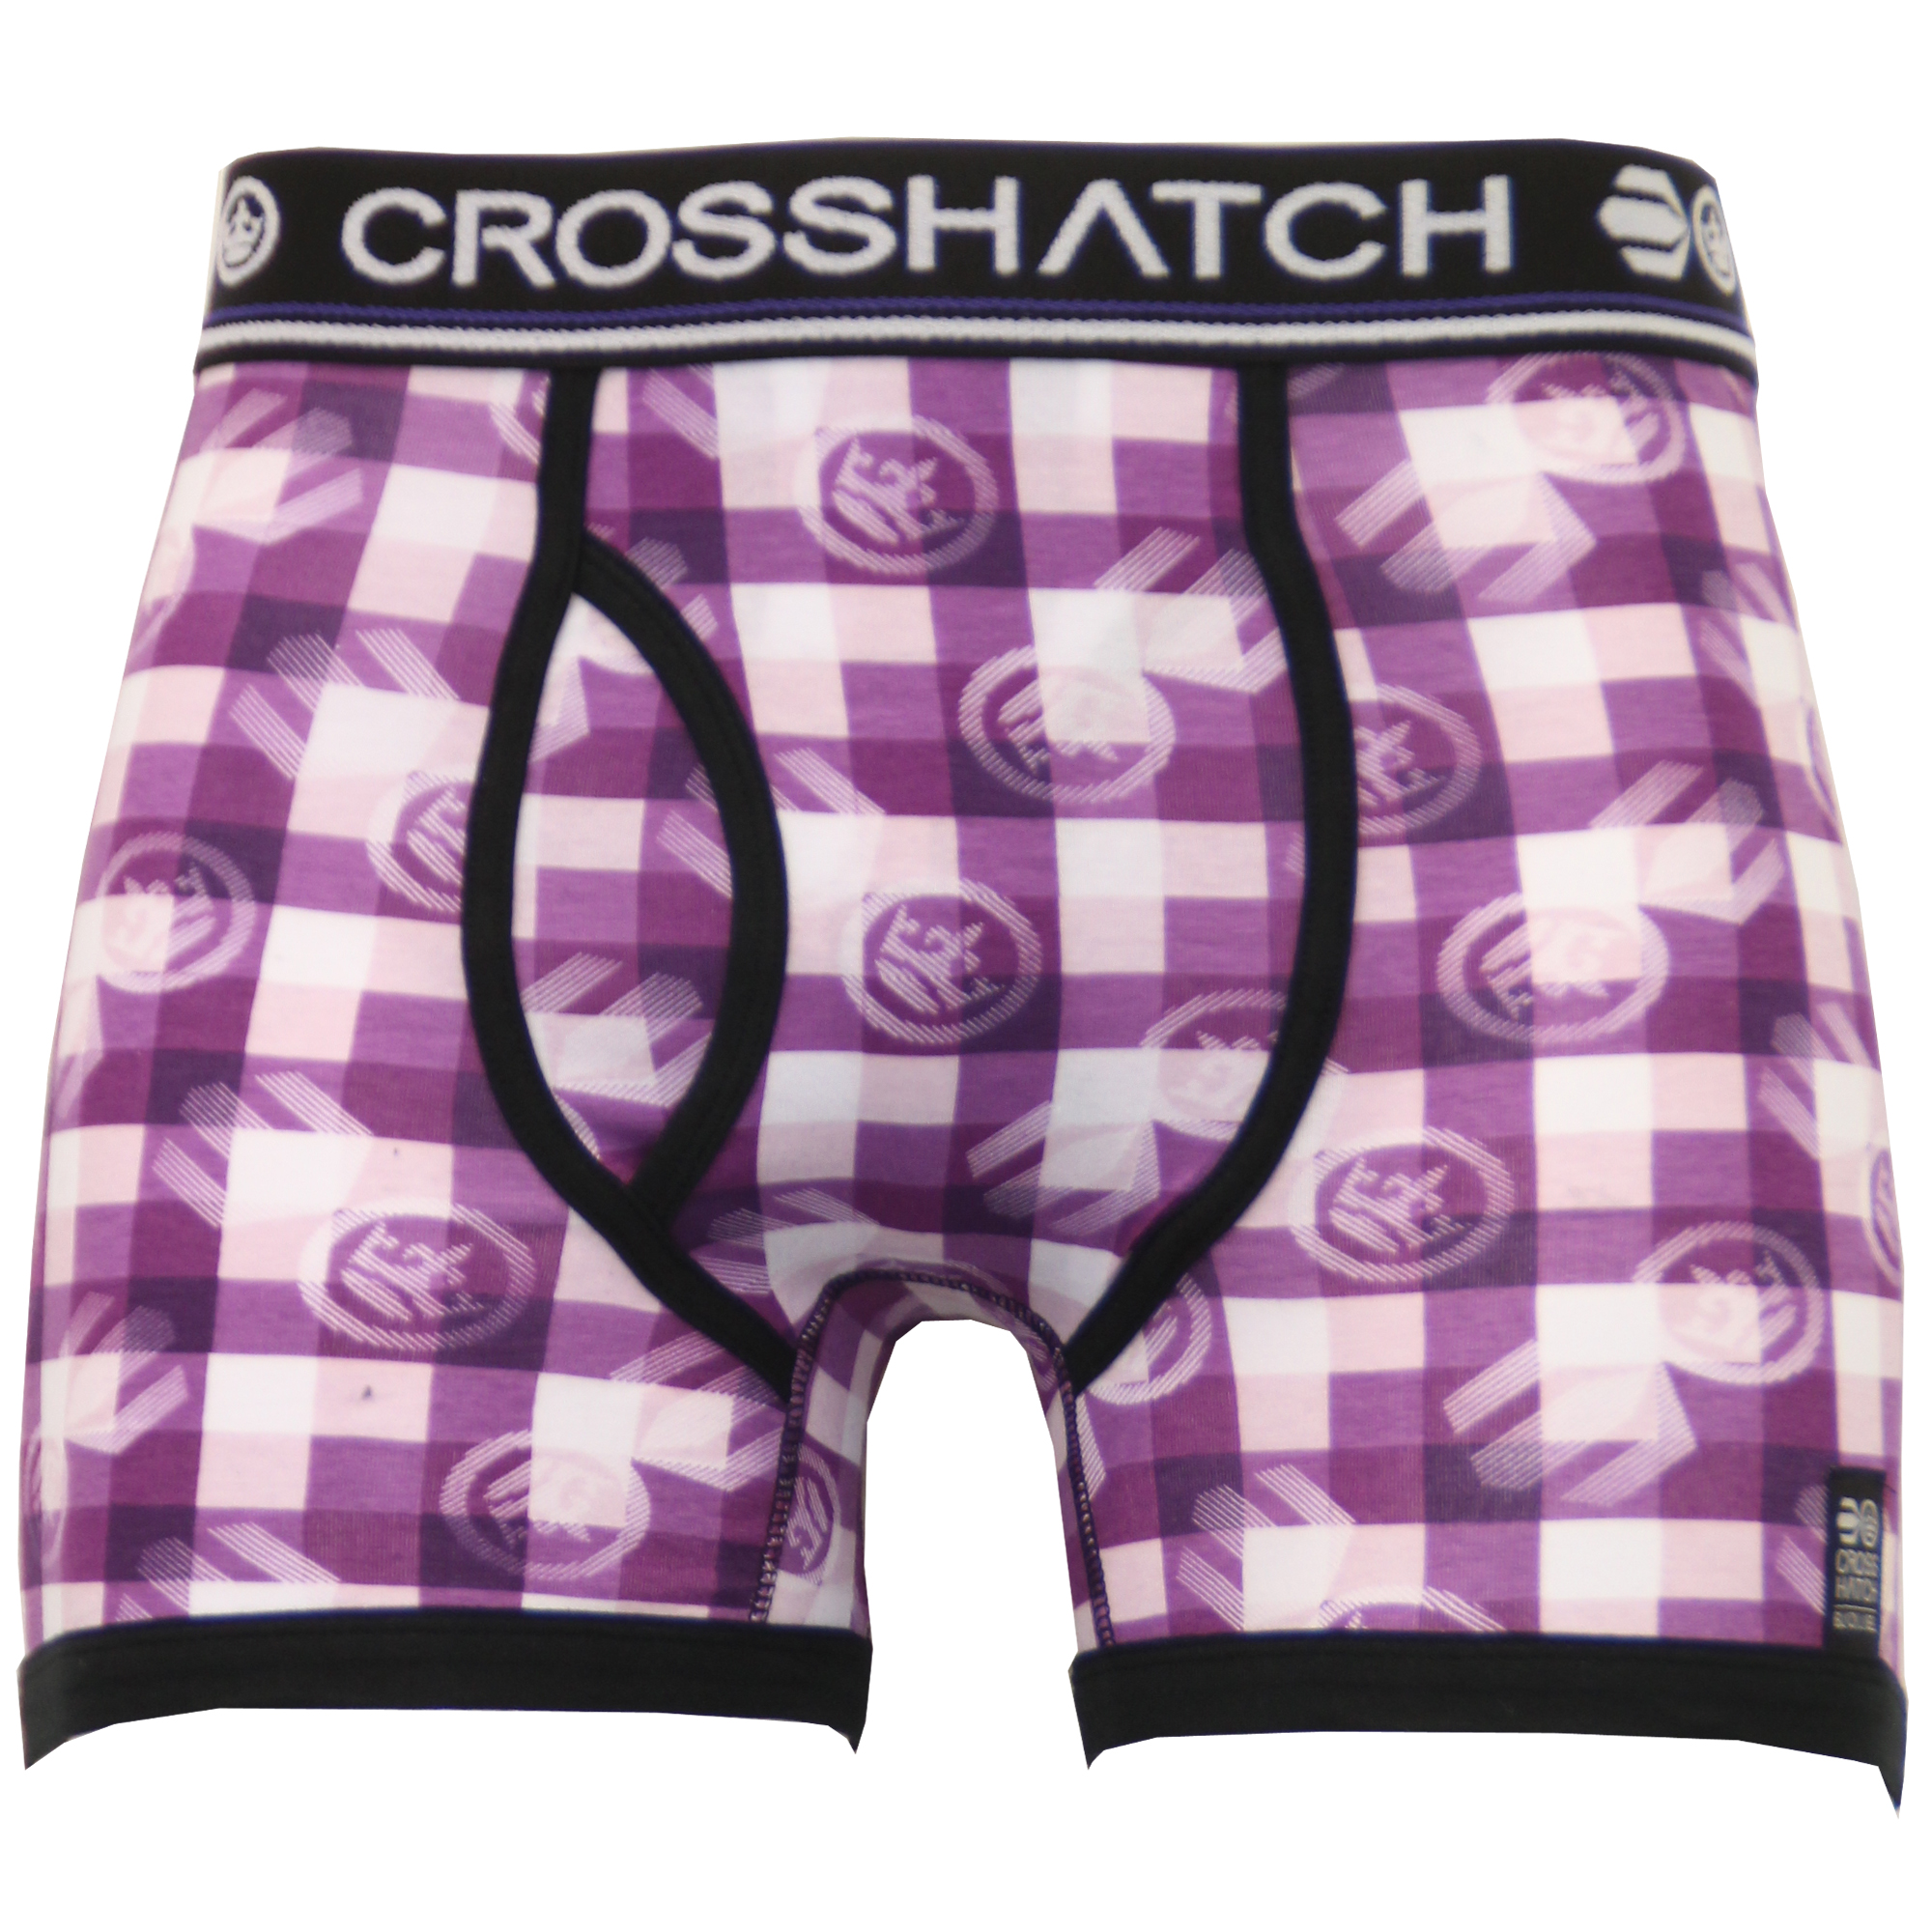 thumbnail 14 - Mens Boxer Crosshatch TWO 2 Pack Underwear Trunks Shorts Plain Check Casual New